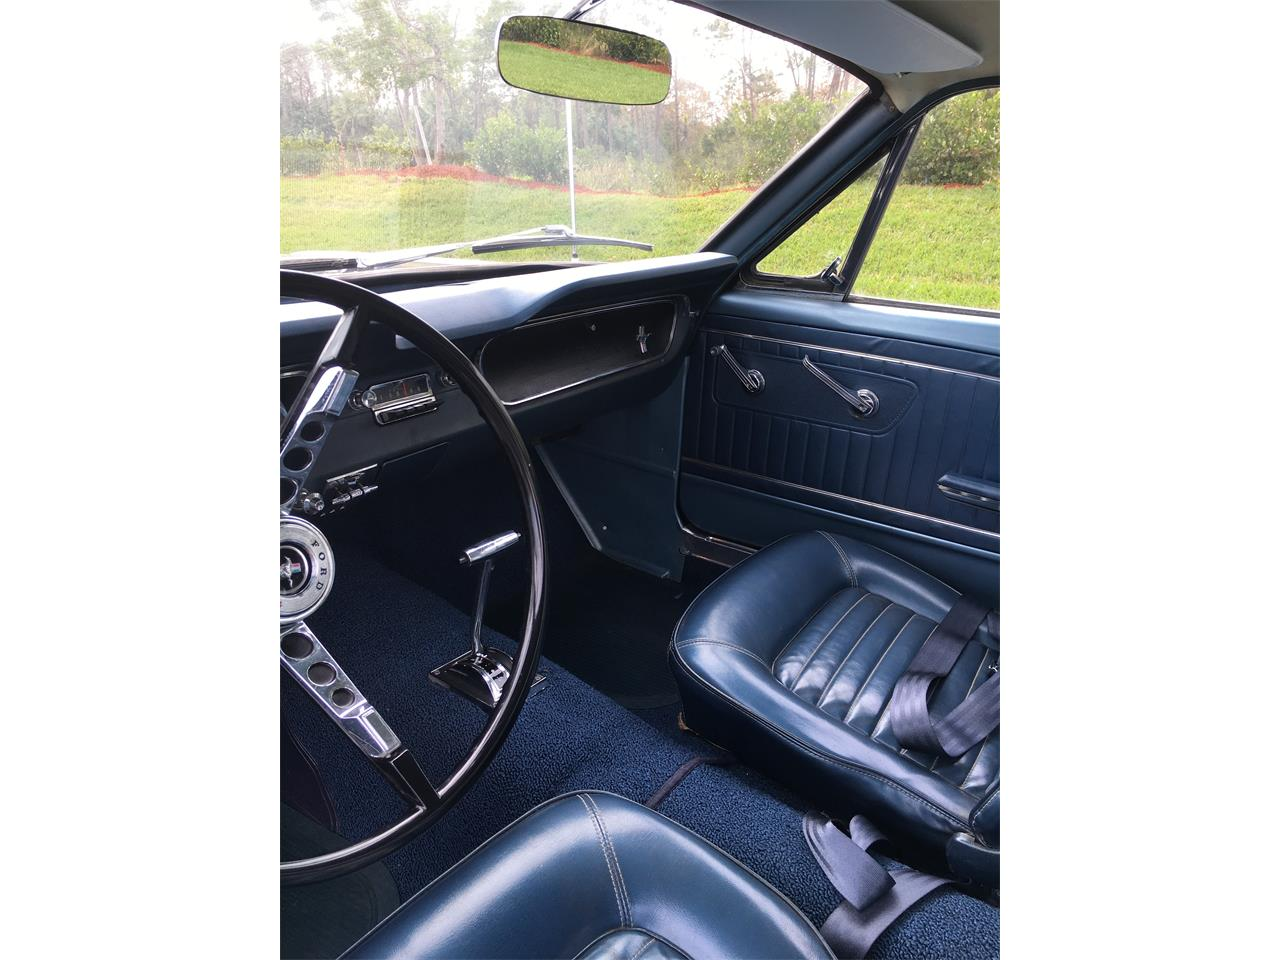 Large Picture of 1965 Mustang located in Naples Florida - $16,000.00 Offered by a Private Seller - MVBG